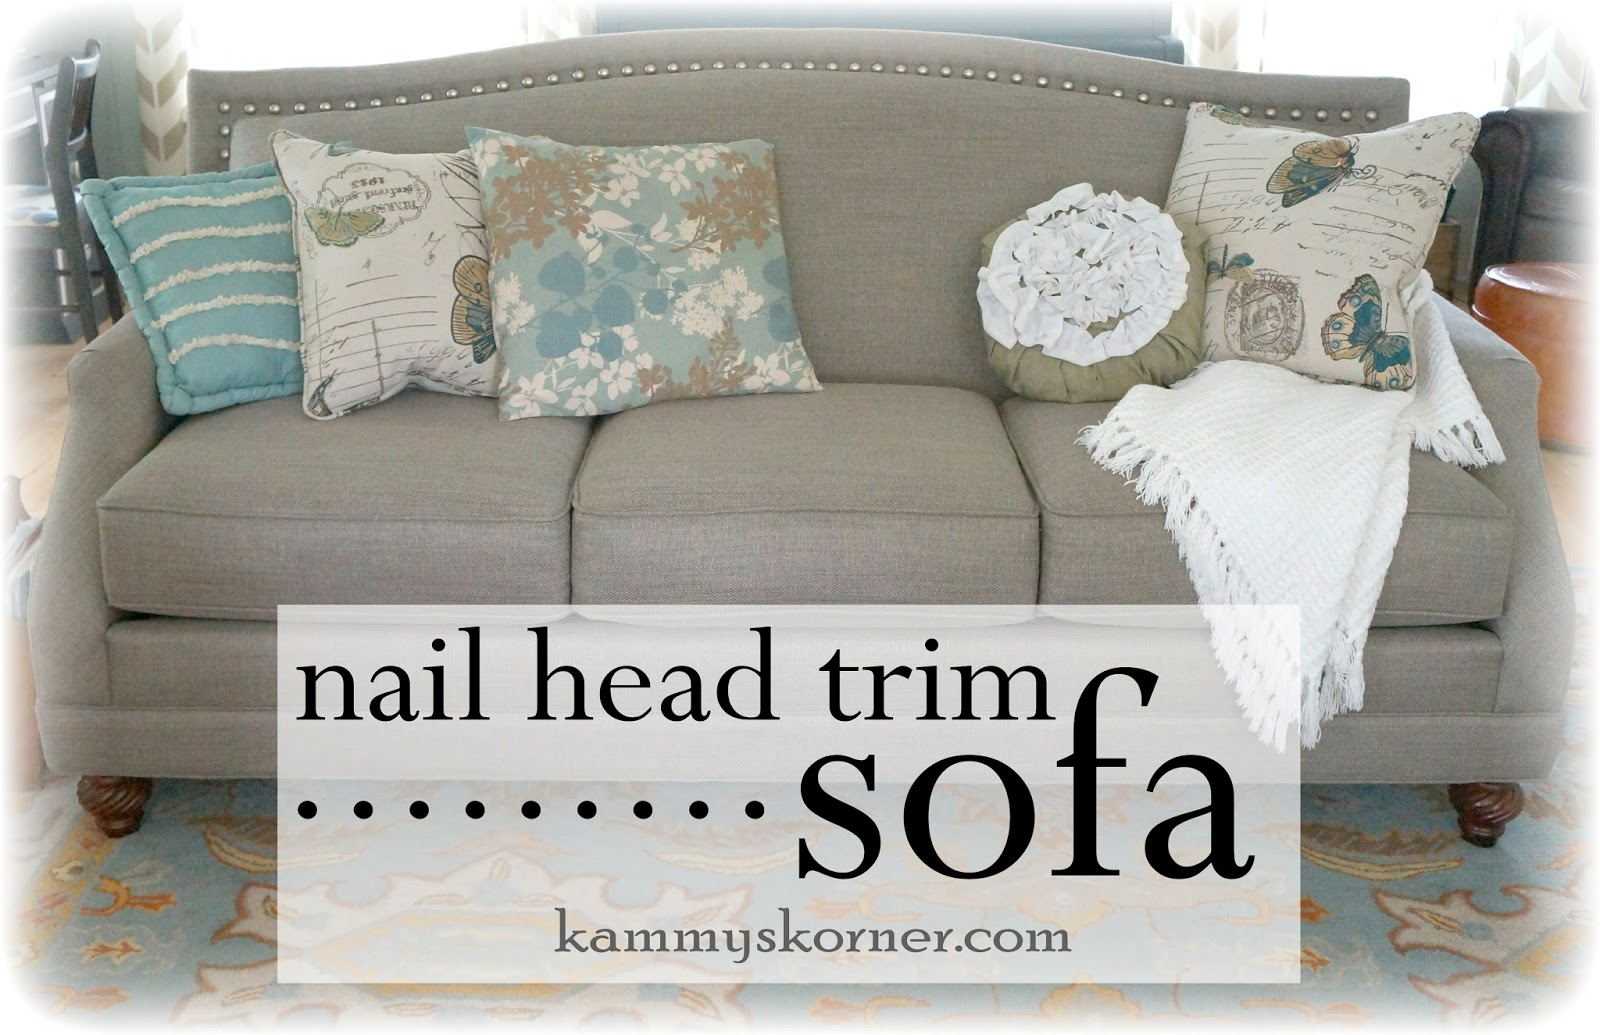 My New Nail Head Trim Sofa!